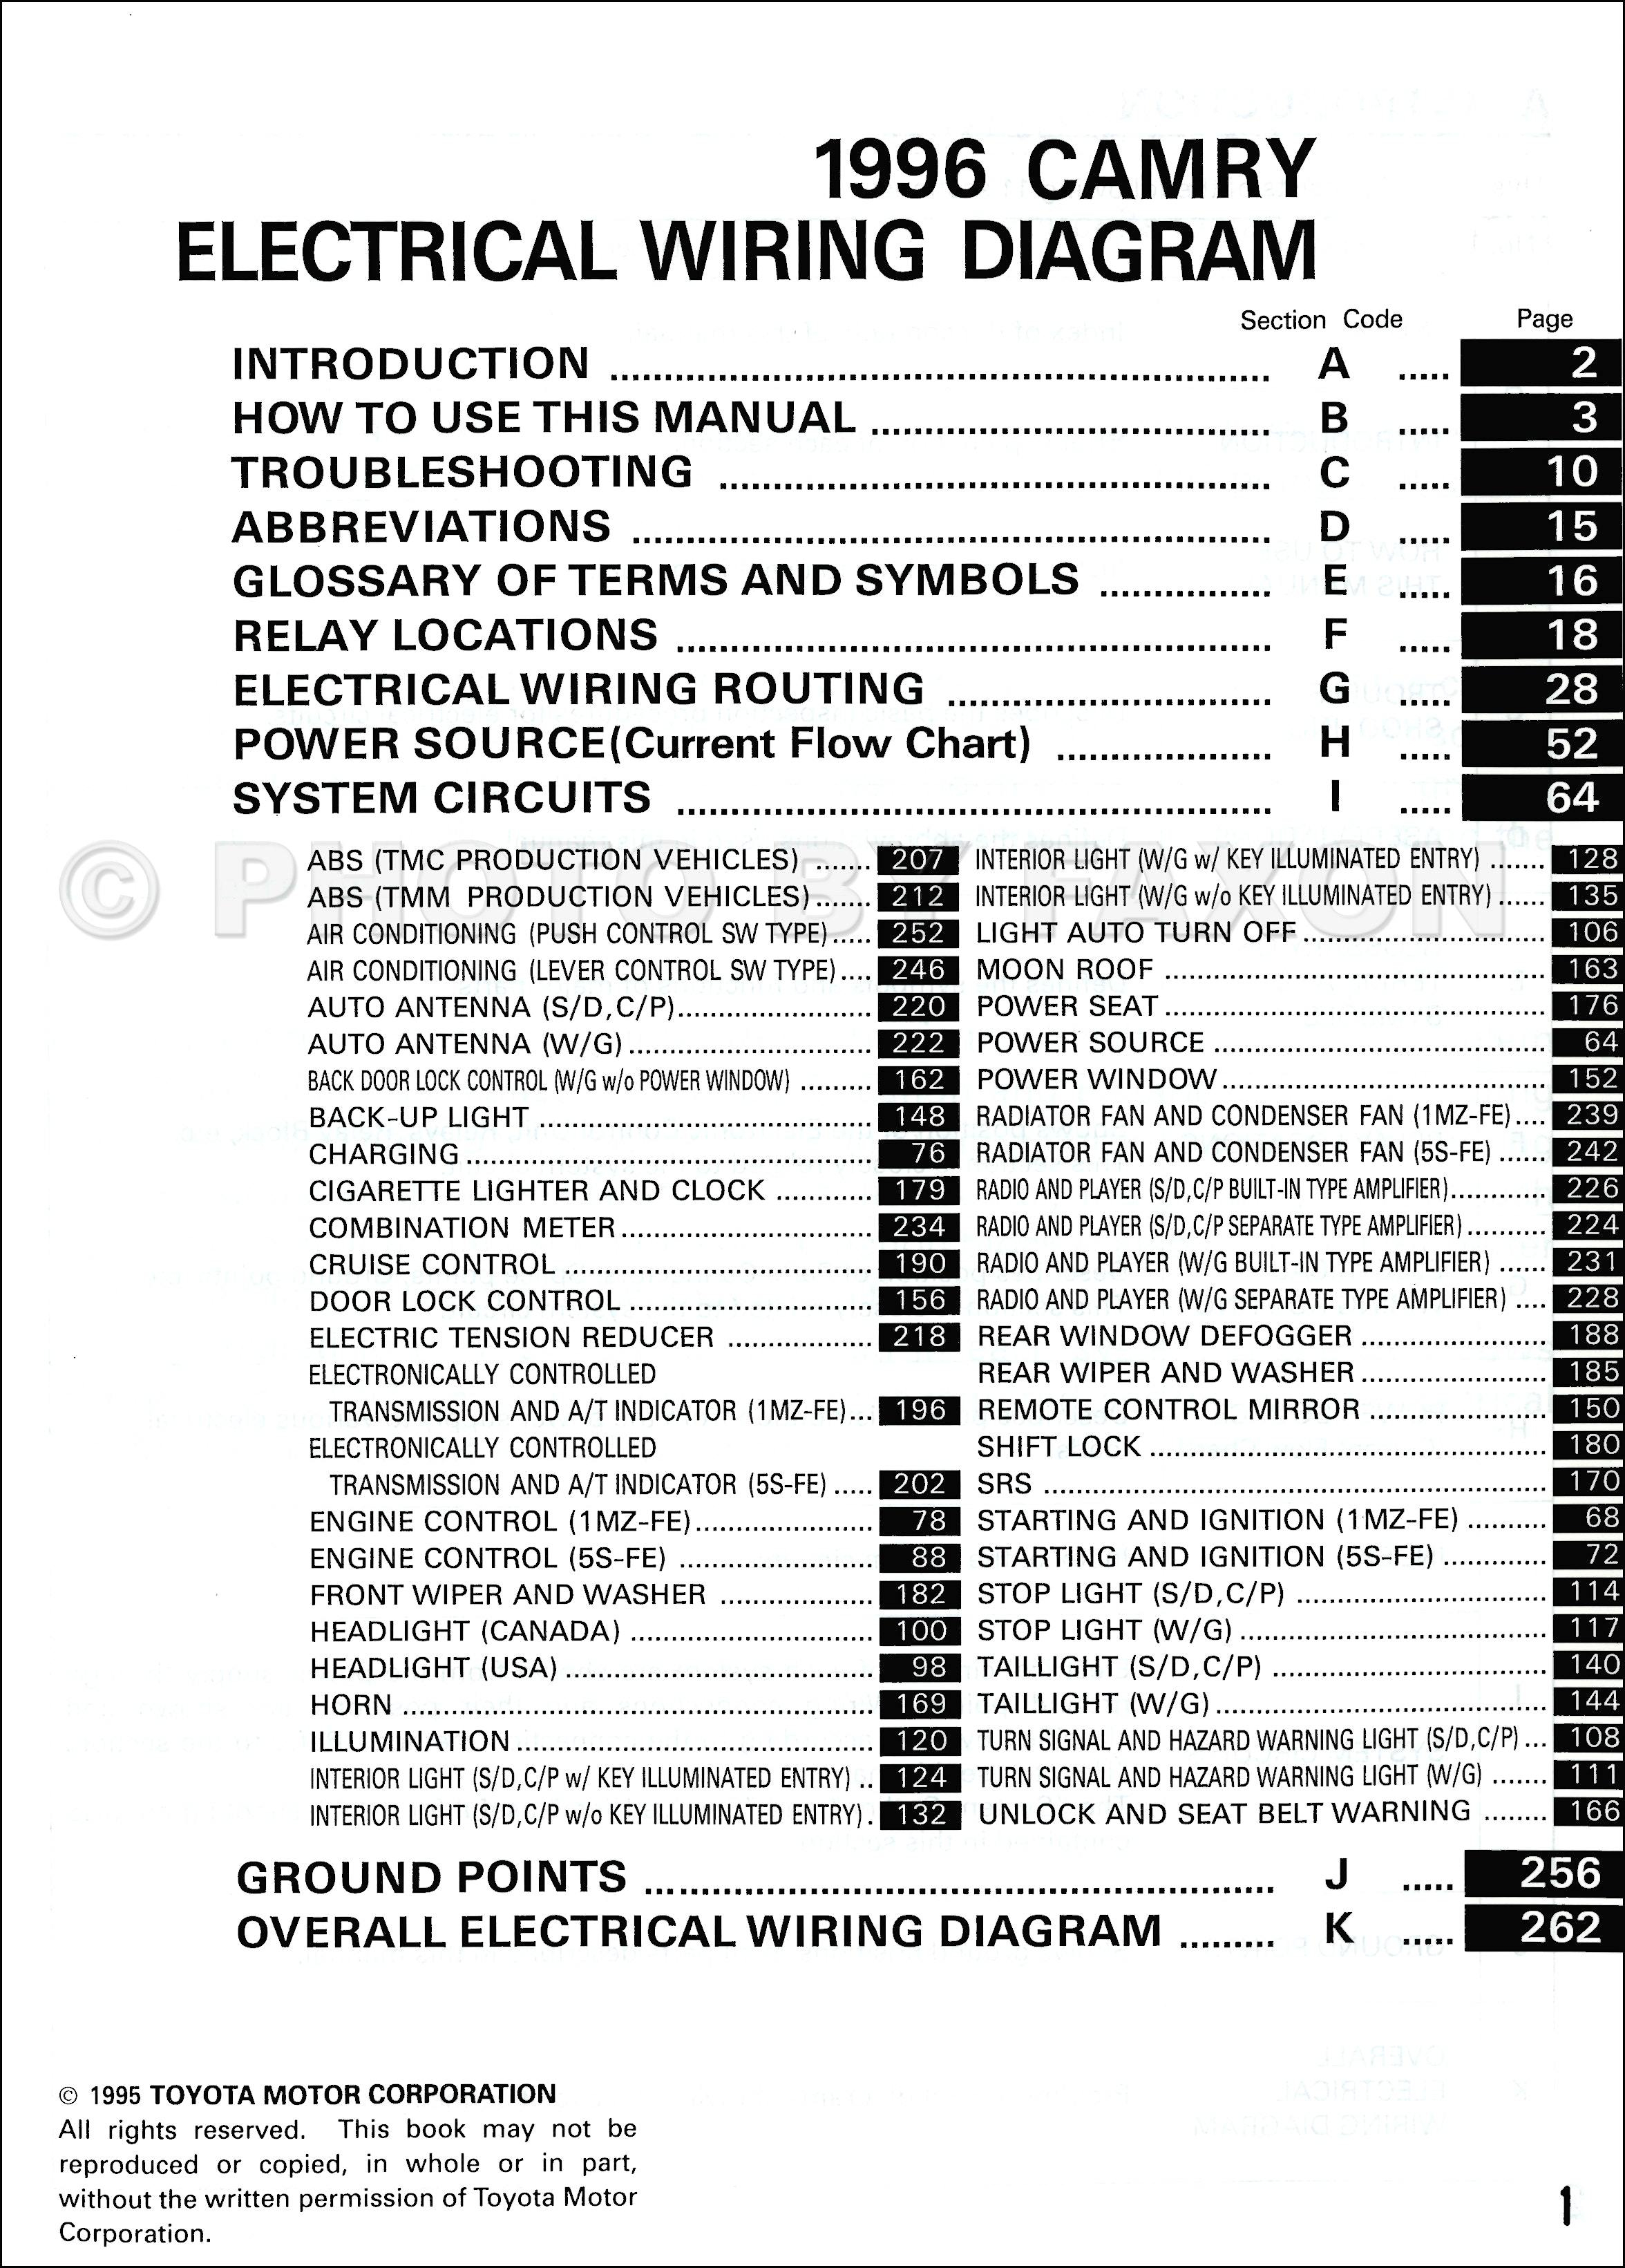 1996 Toyota Avalon Stereo Wiring Diagram - All Wiring Diagram Data - Toyota Tacoma Stereo Wiring Diagram